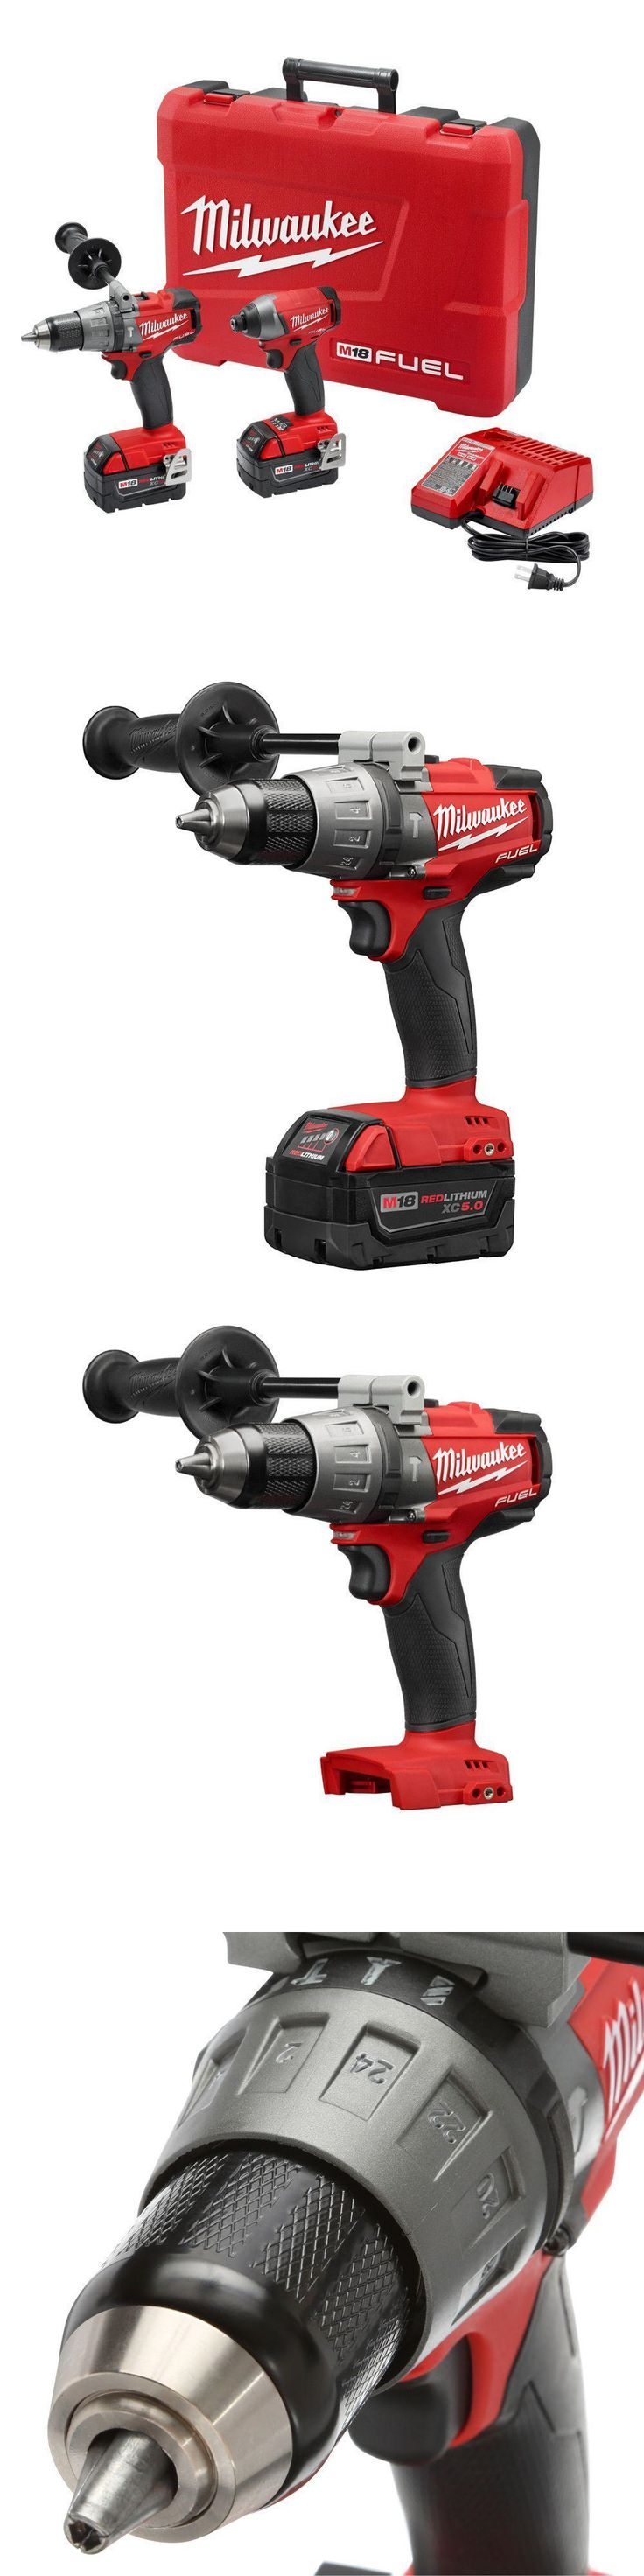 Combination Sets 177000: Milwaukee M18 Fuel 18V Brushless Hammer Drill Impact Driver Combo Kit 2897-22 -> BUY IT NOW ONLY: $299.99 on eBay!